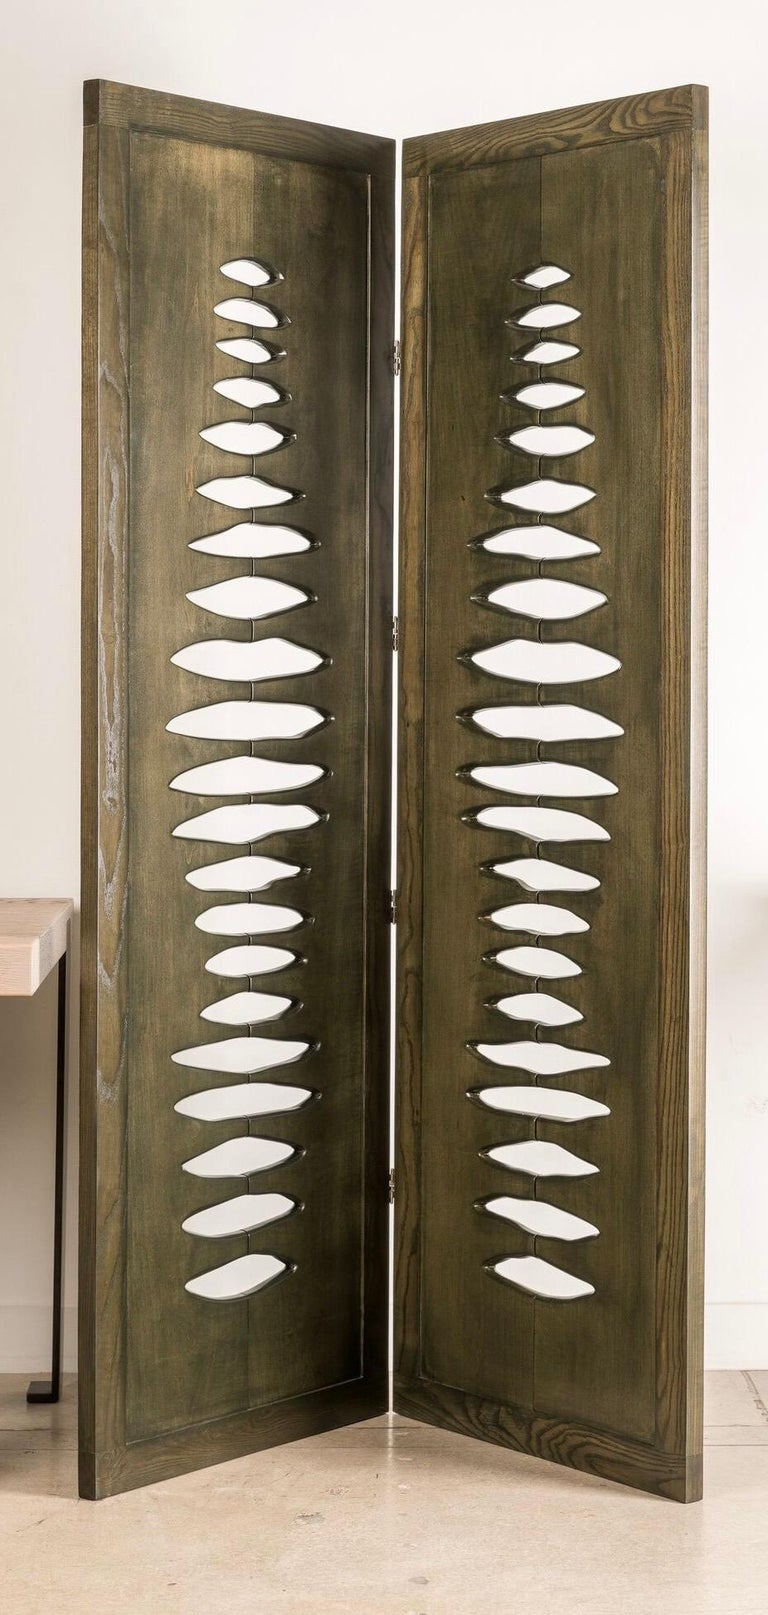 'Navajo' Sculptural Screen Space Divider in Solid Wood by Vivian Carbonell For Sale 1